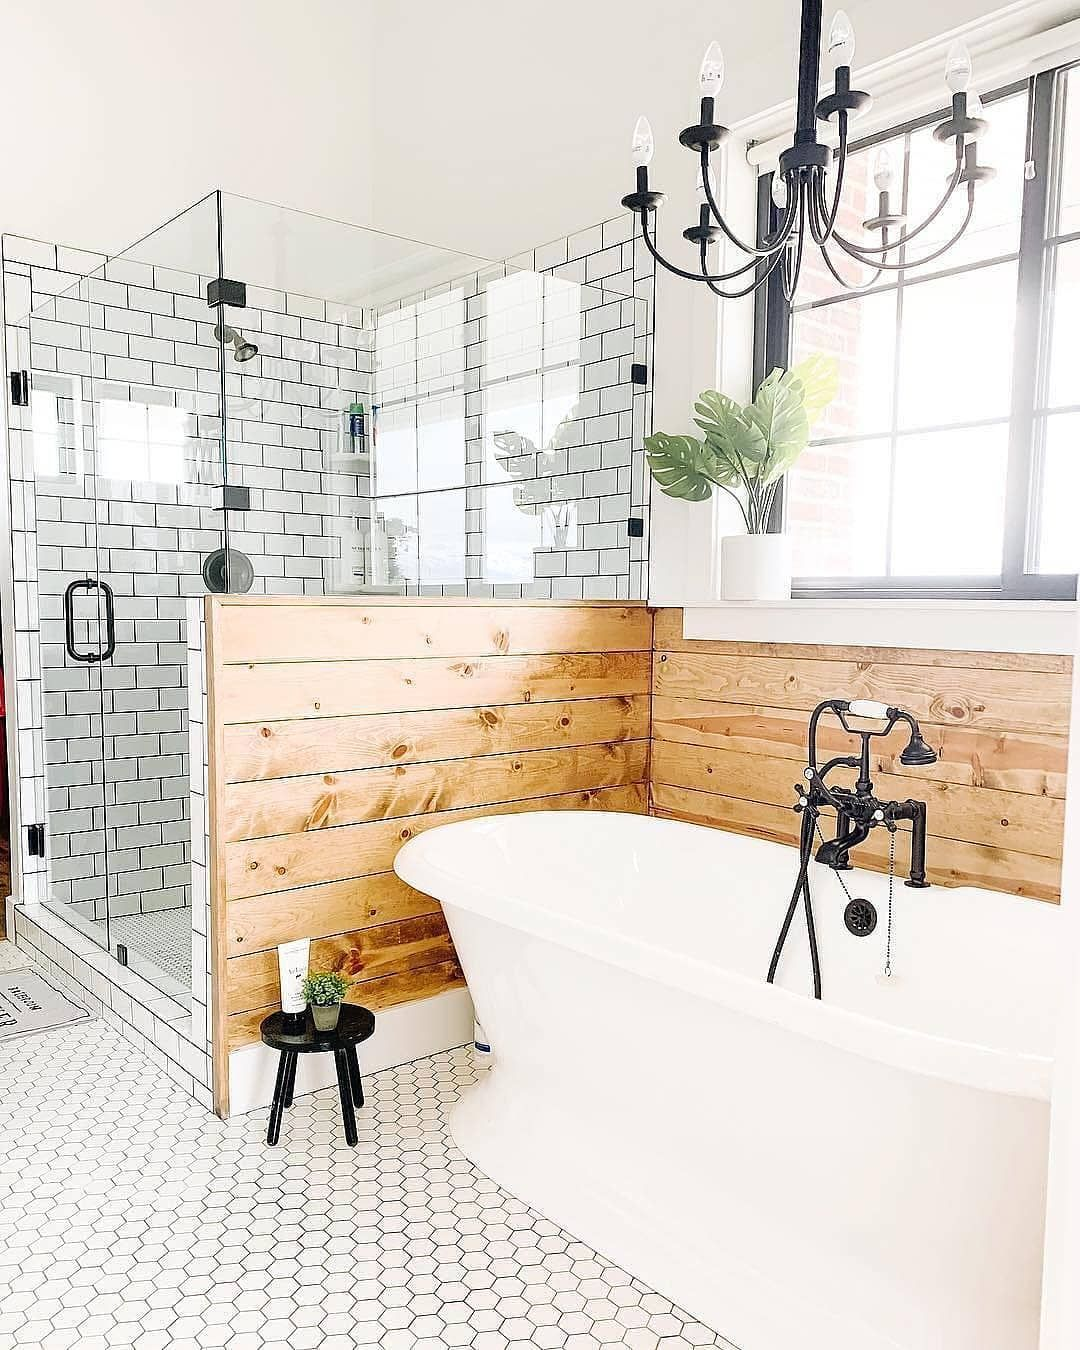 "Farmhouse Homes 🏡 on Instagram: ""We LOVE this blend of modern and rustic farmhouse in this master bathroom! 😍 What do you think? Would you want a bath like this? 🏡 TAG a…"""